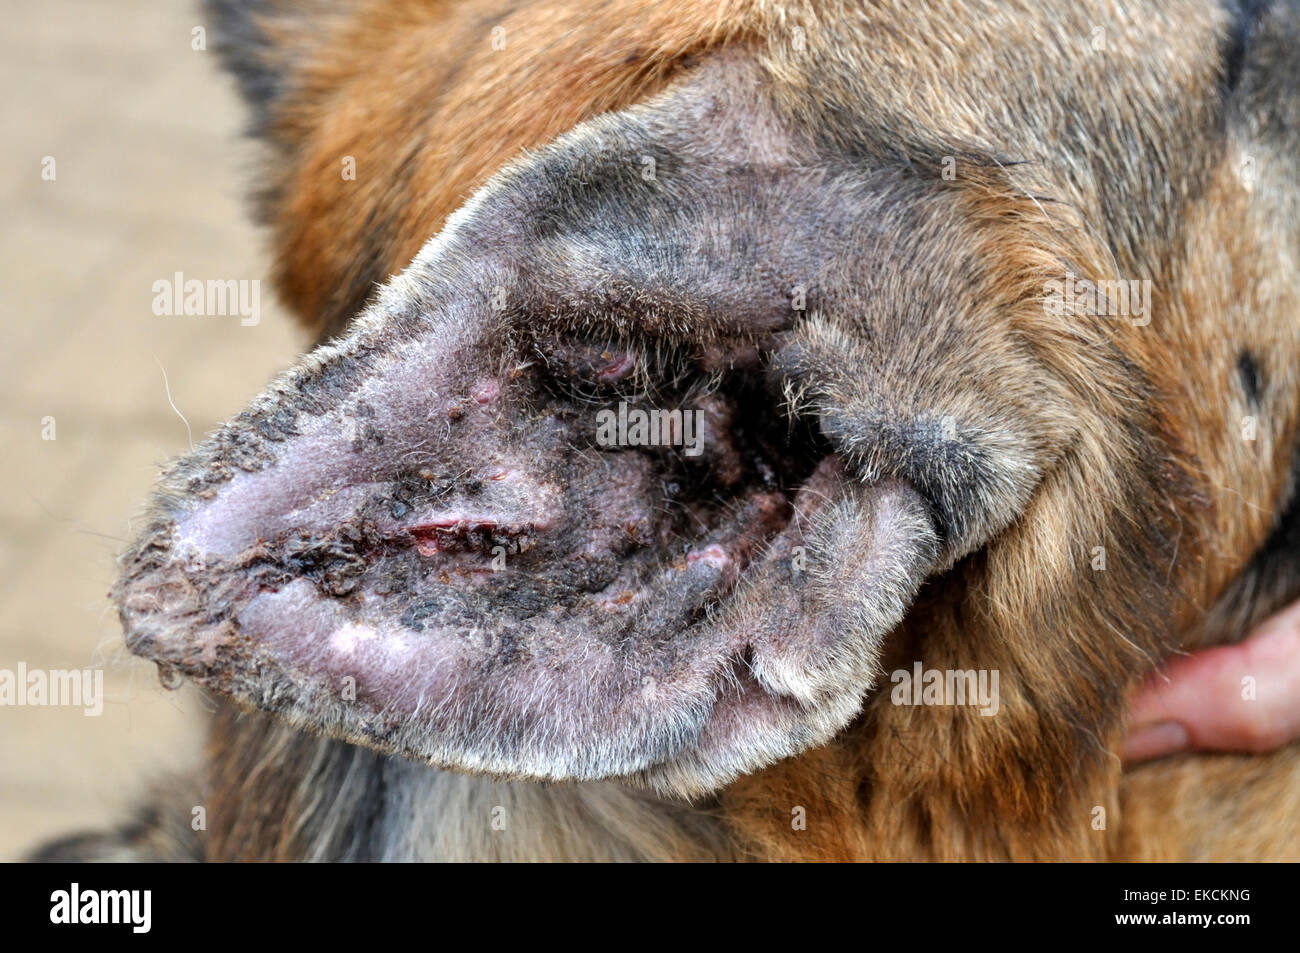 Hematoma Dog Ear Picture